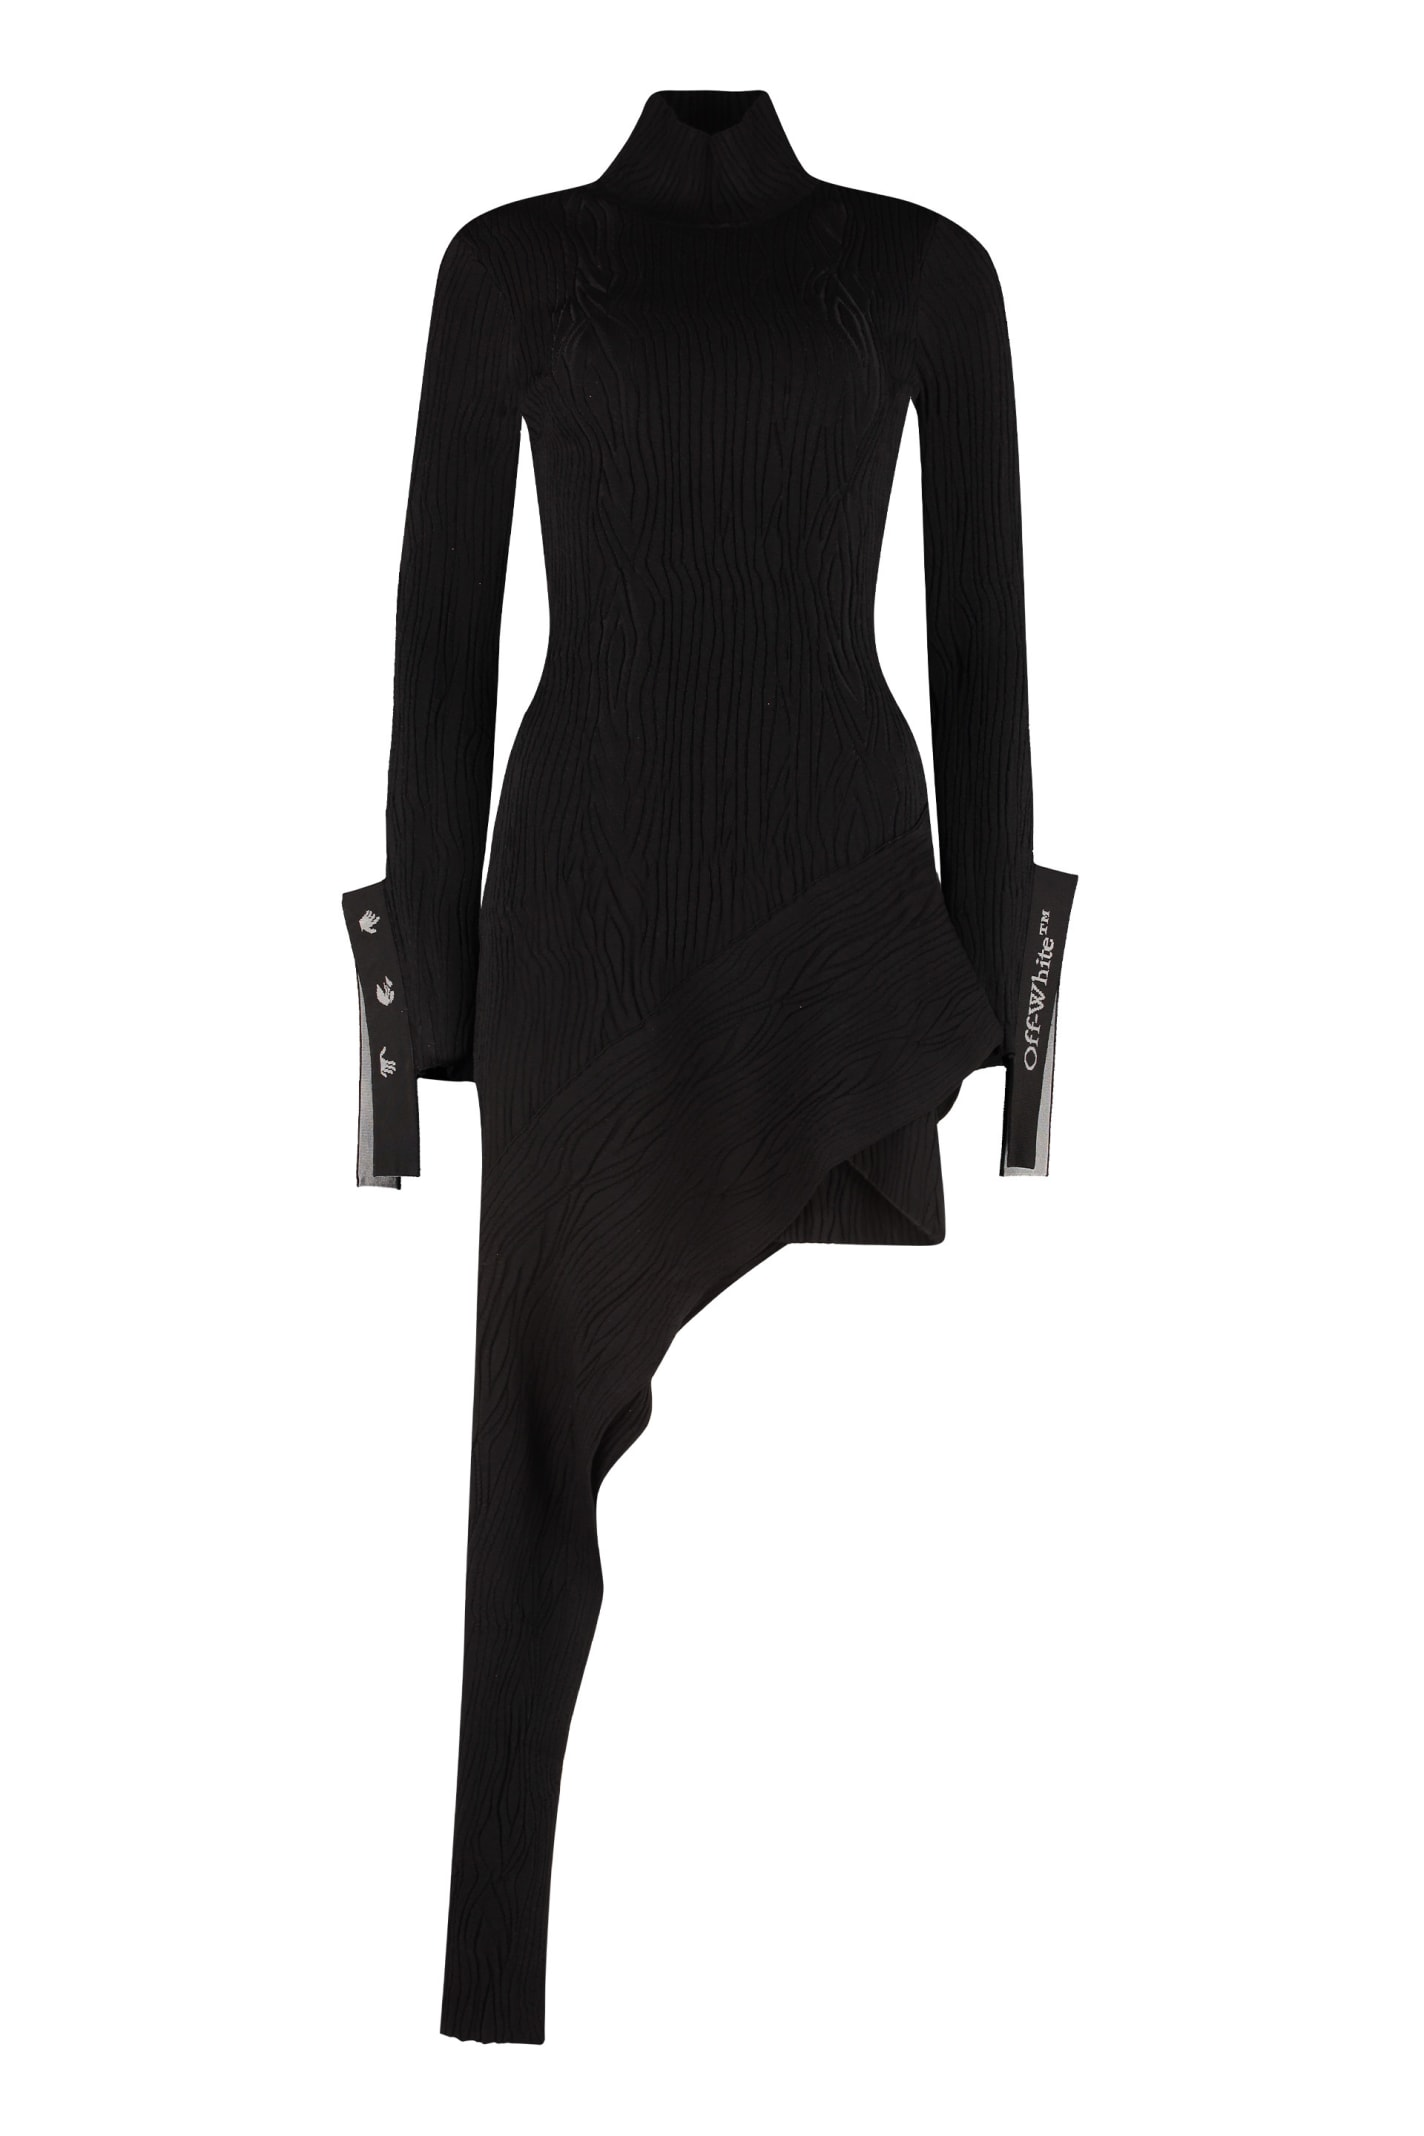 Buy Off-White Asymmetric Knit Dress online, shop Off-White with free shipping